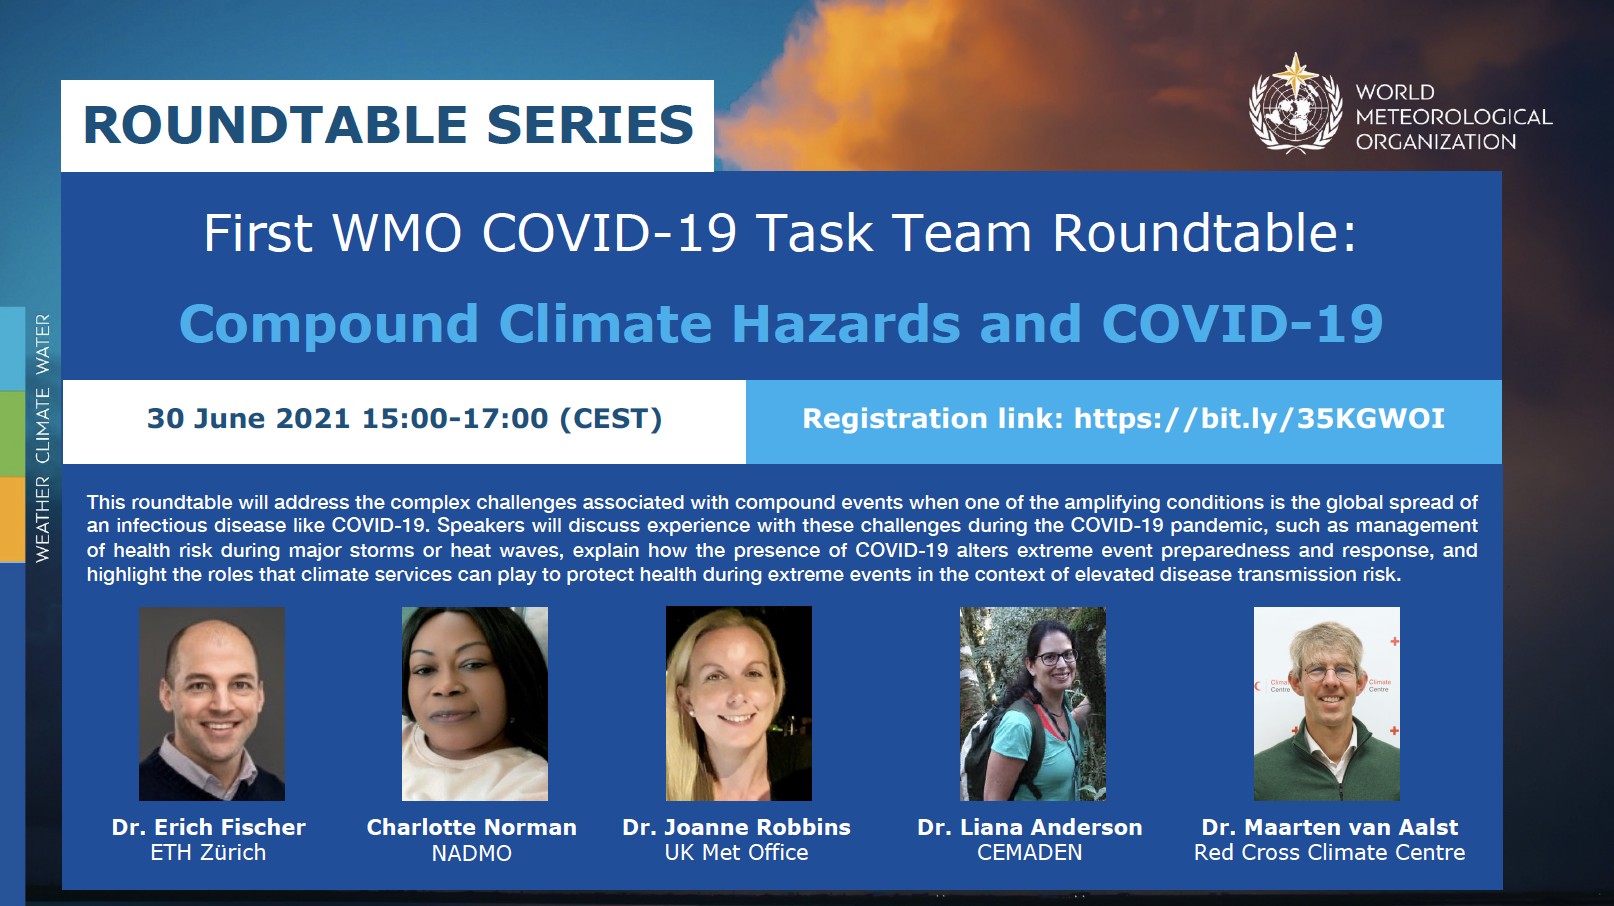 First COVID-19 TT Roundtable